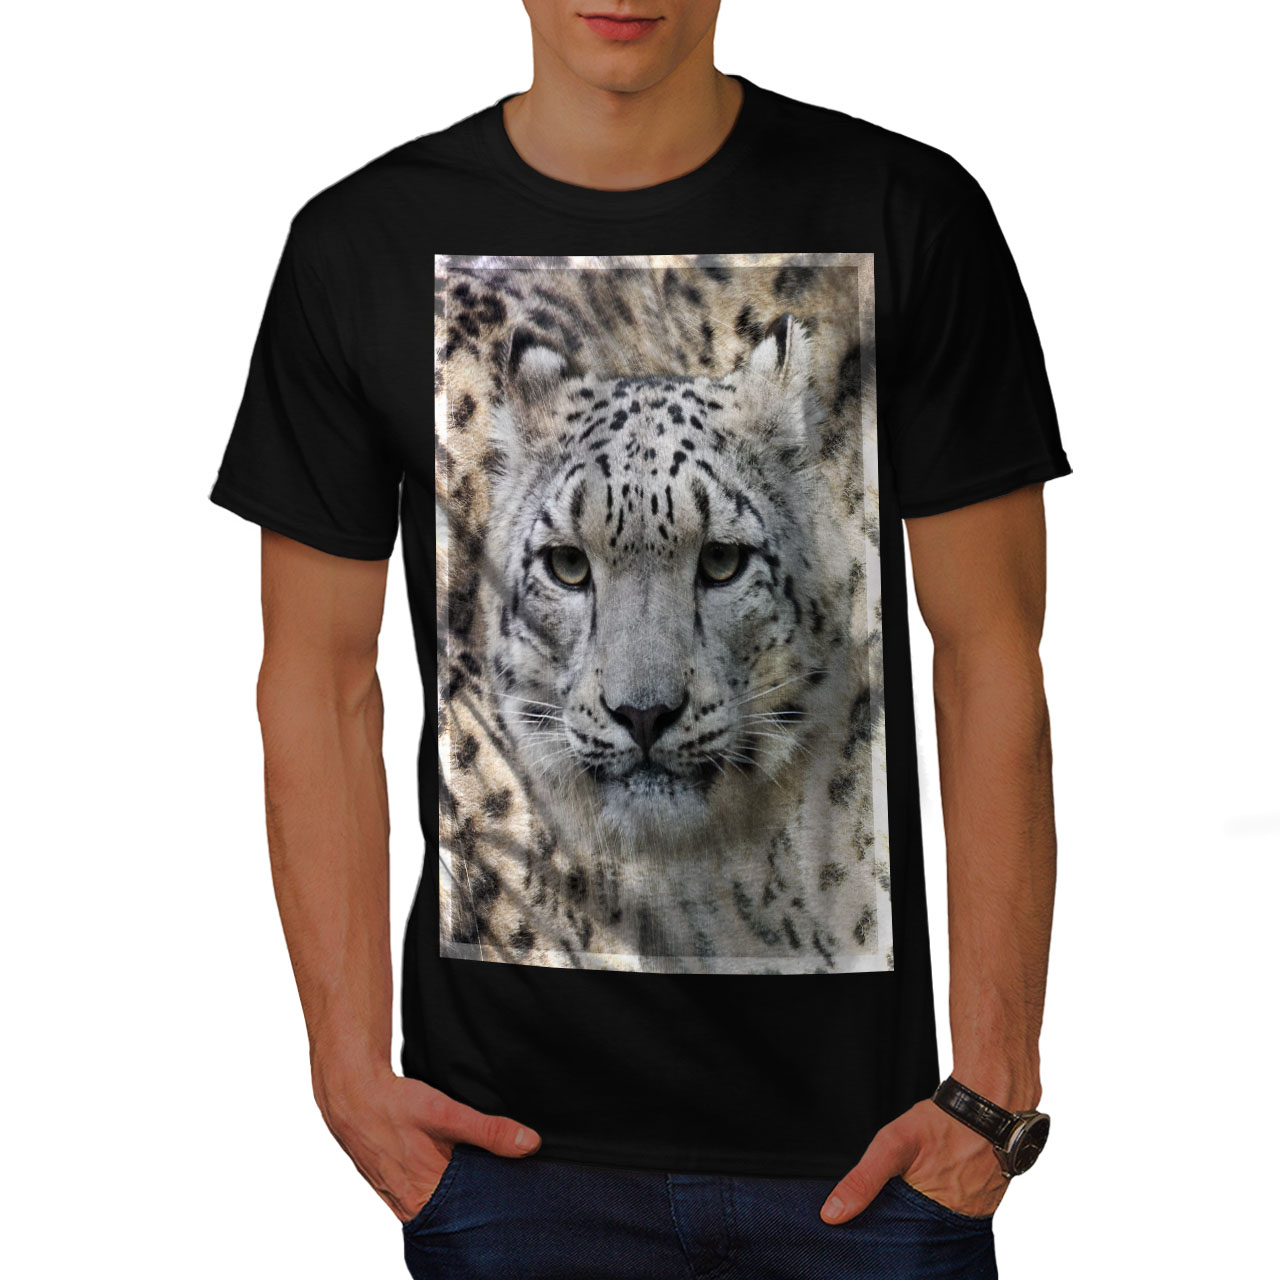 Marbled Graphic Design Printed Tee Wellcoda Big cat Beast Wild Mens T-shirt